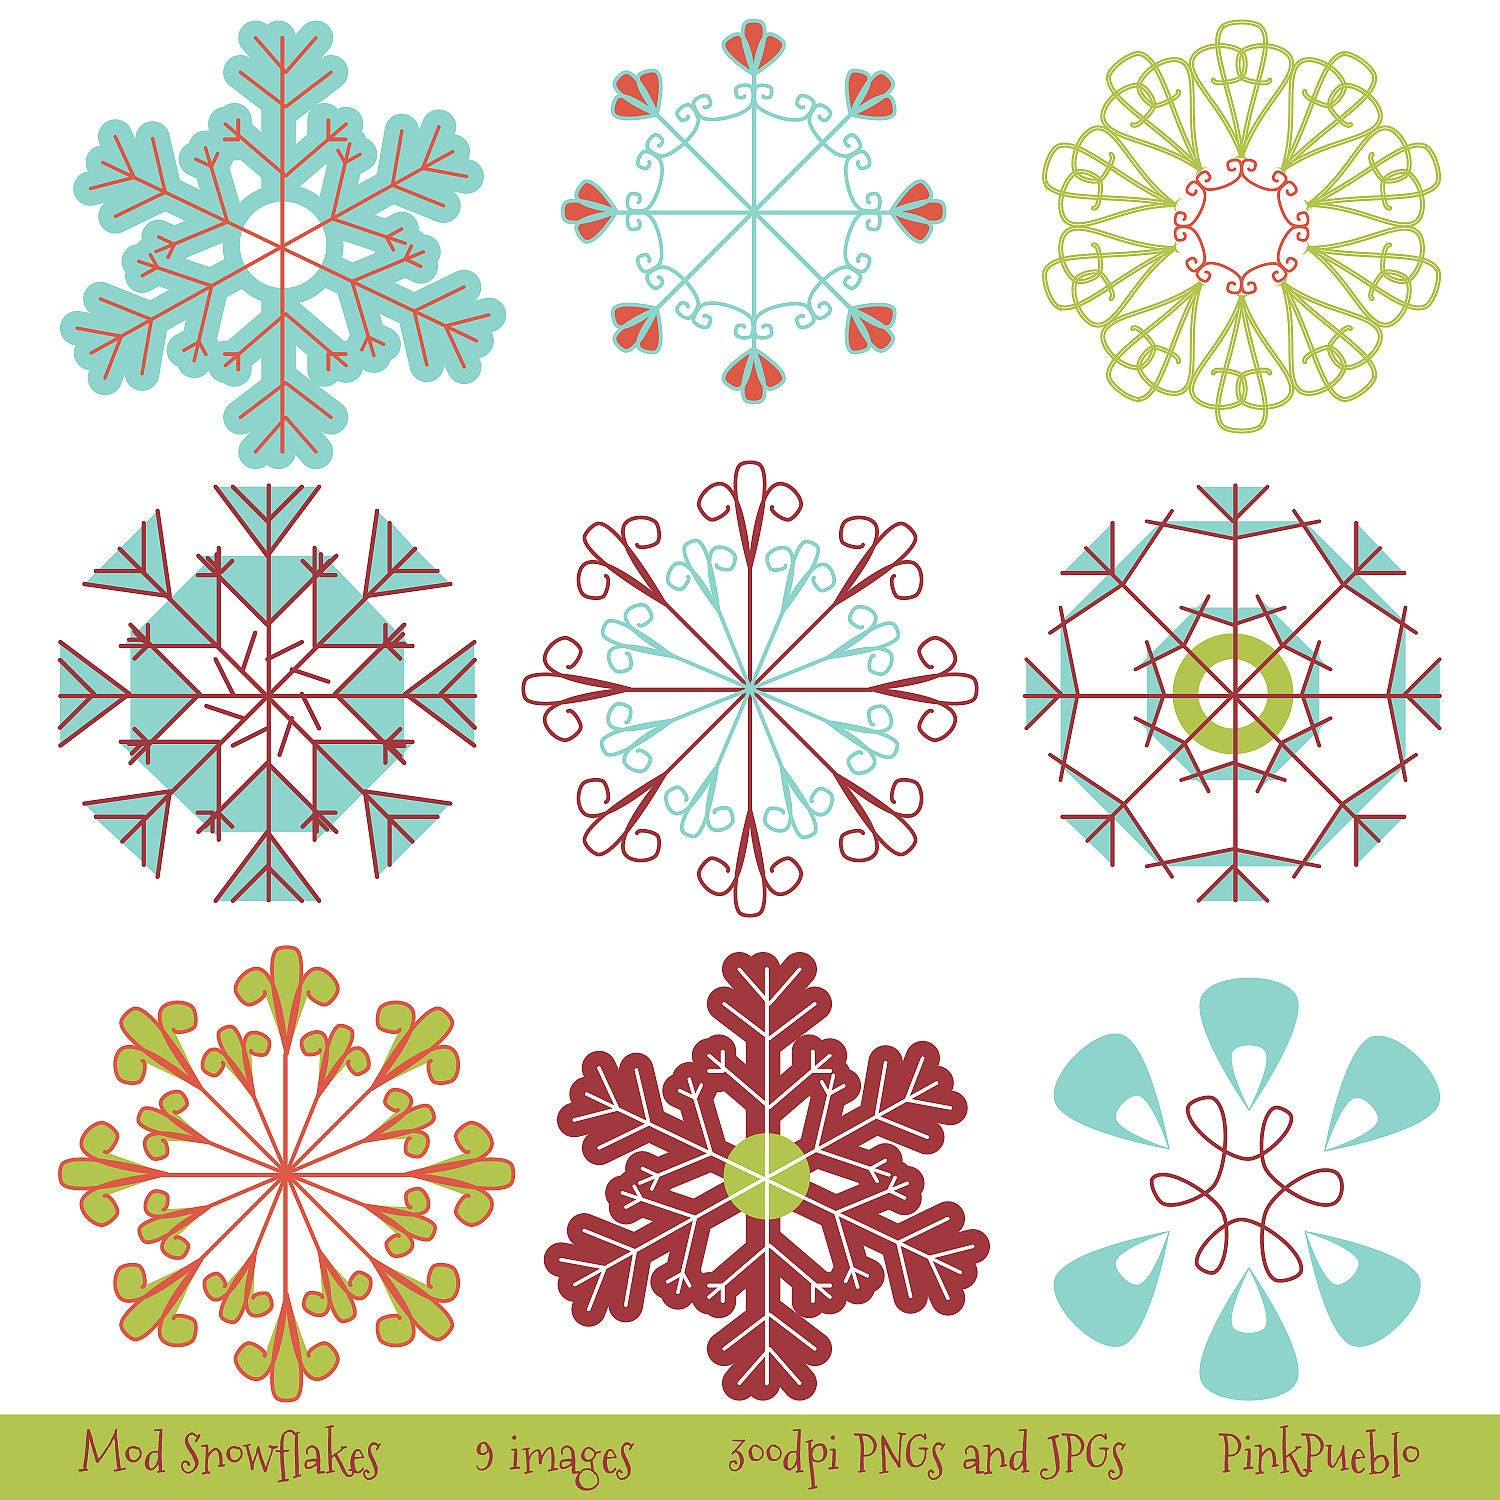 Snowflakes clip art snowflakes clipart commercial by pinkpueblo